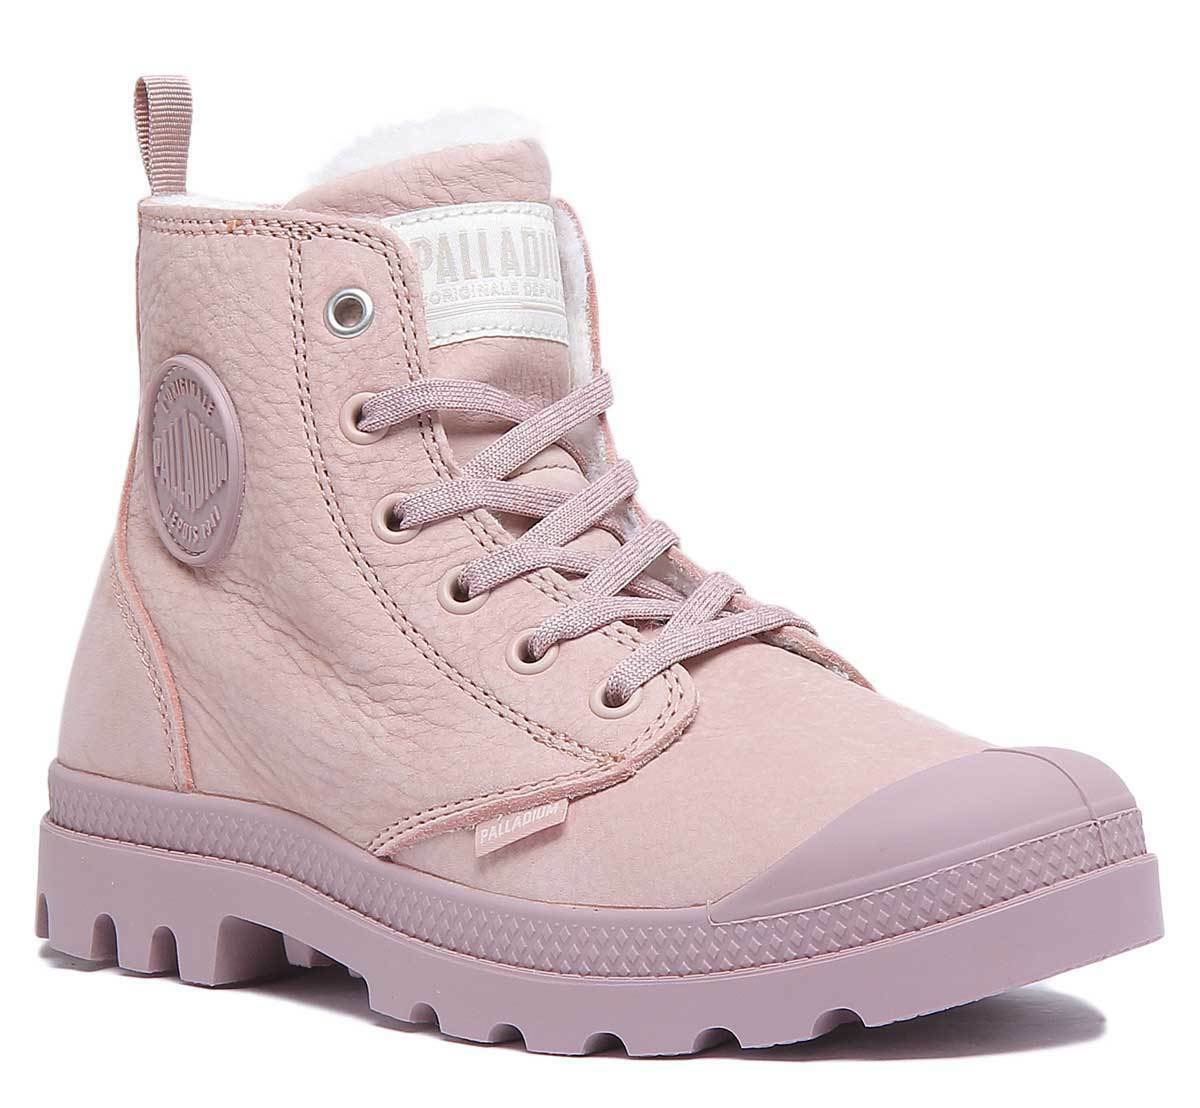 Palladium Pampa Hi Zip WL Women Nubuck Leather Rose Boots